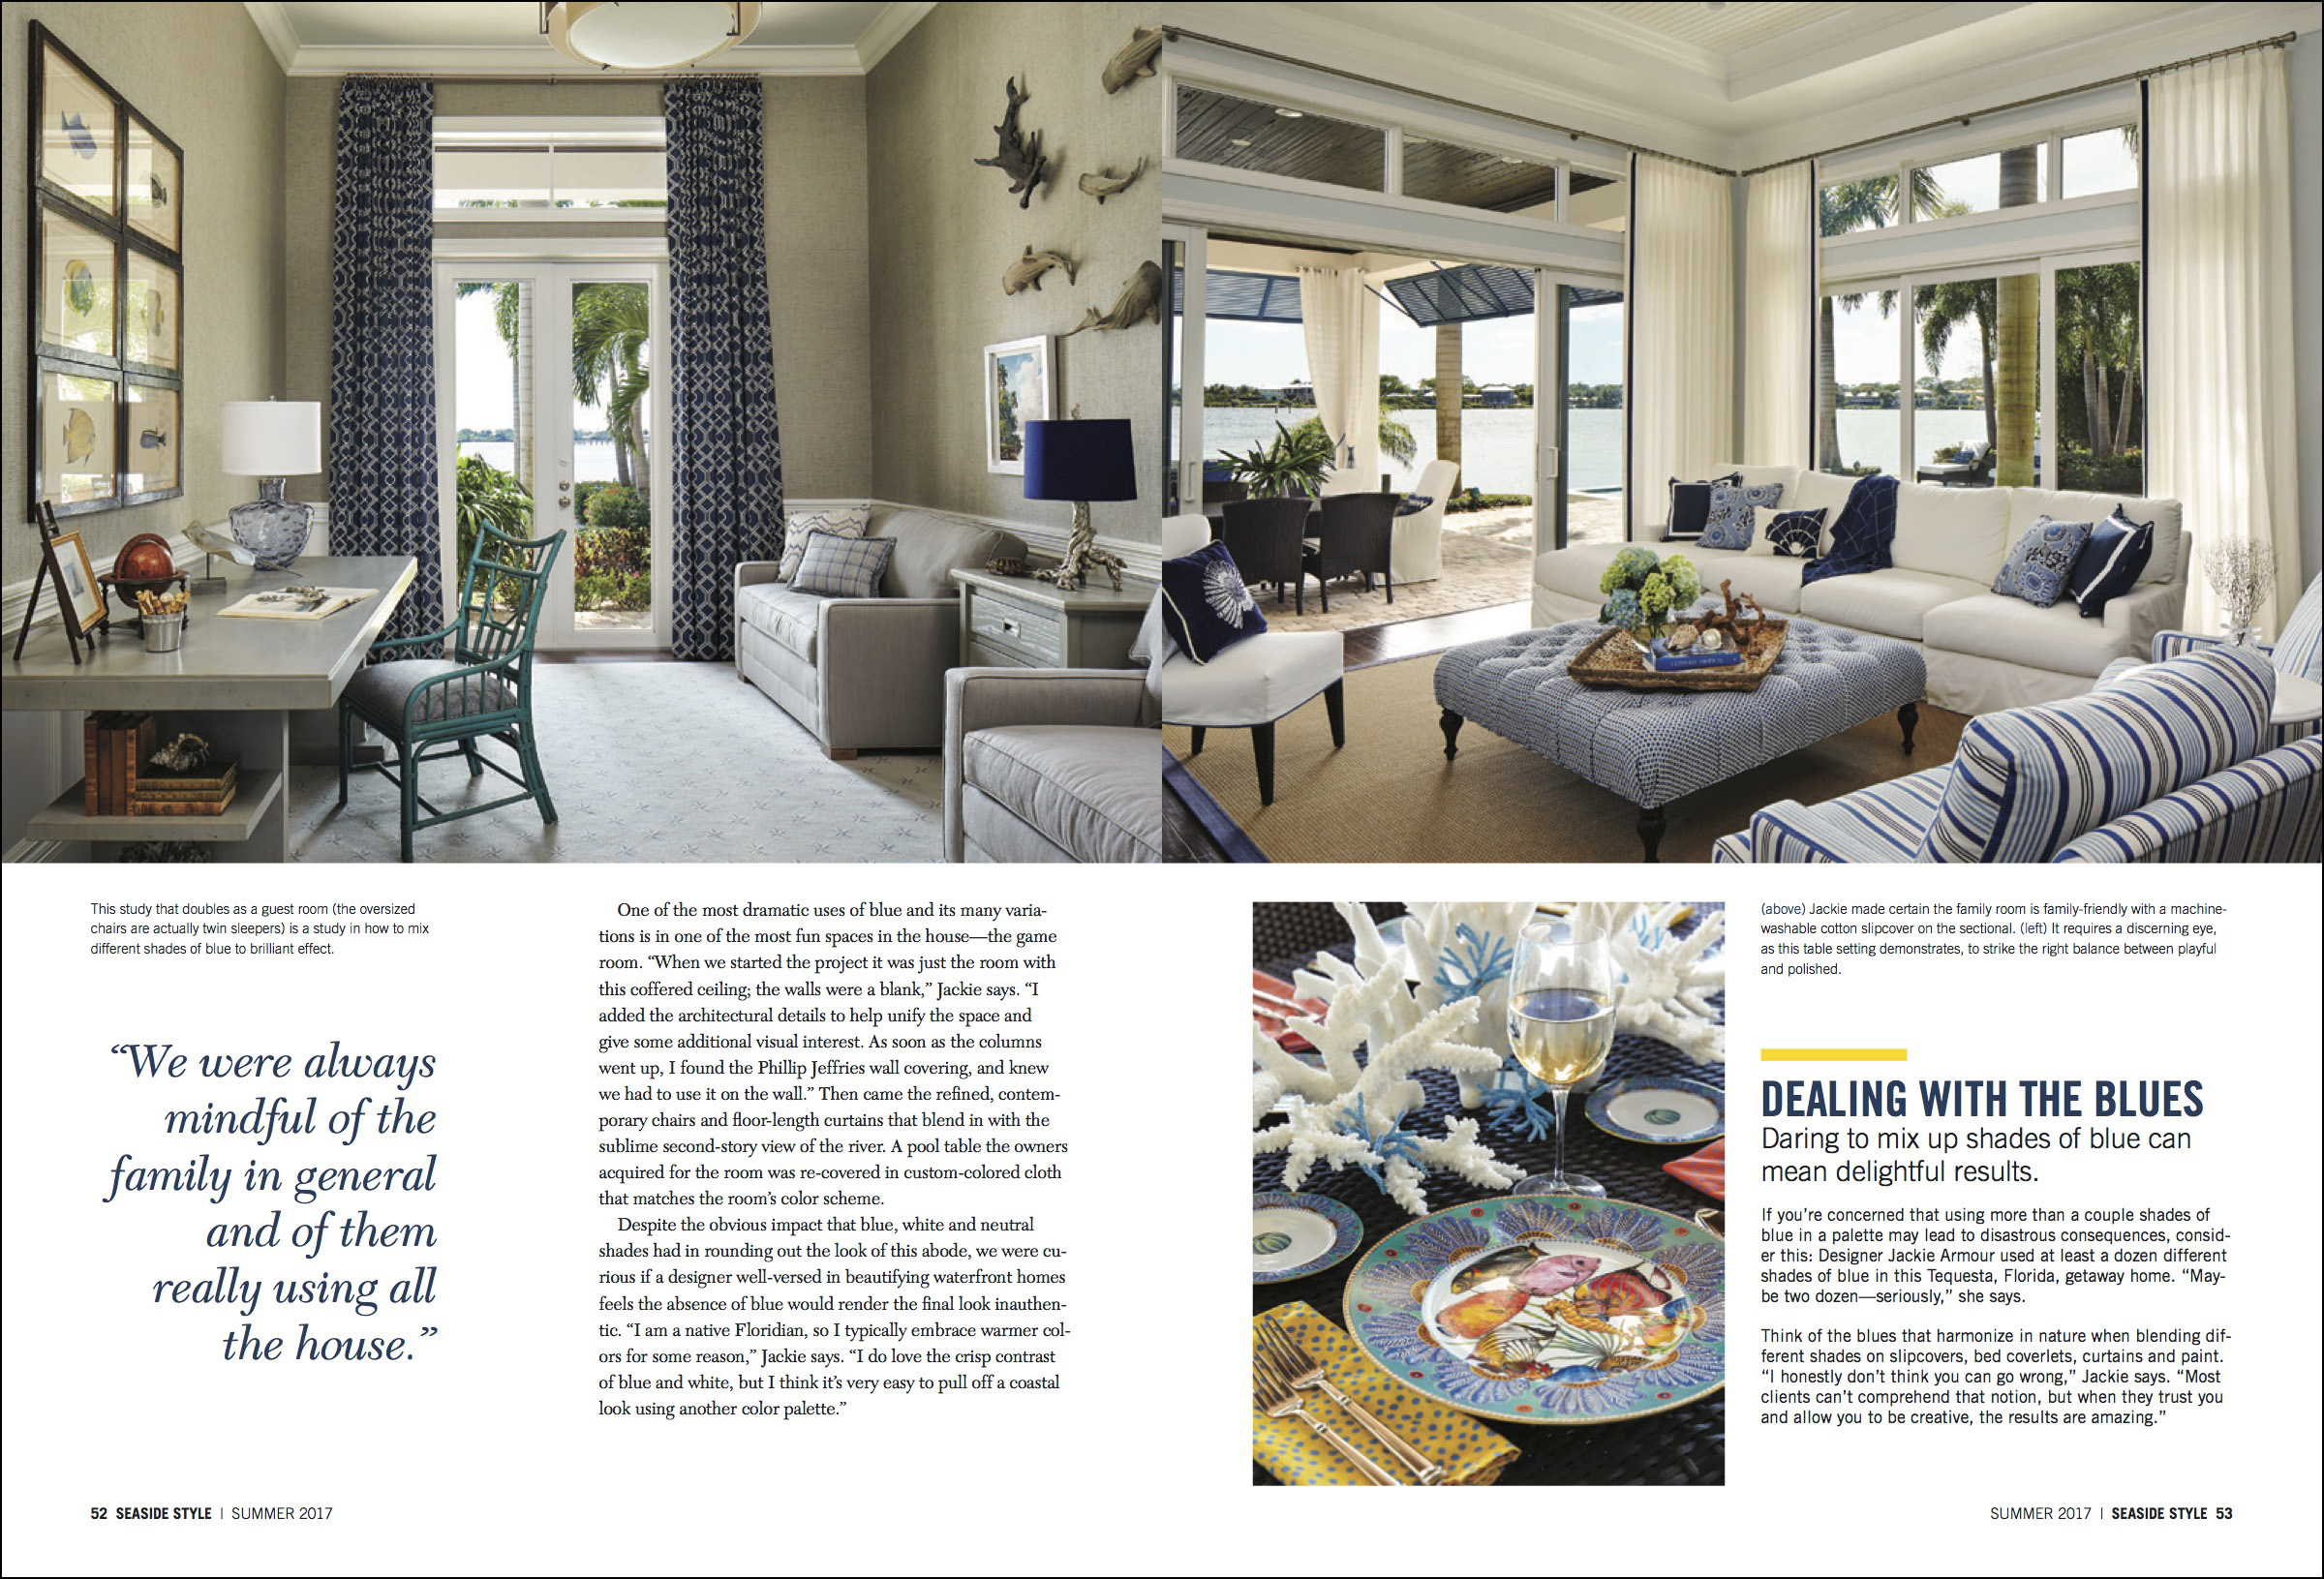 Seaside Style Interior Design Magazine - Tequesta, Palm Beach County, FL